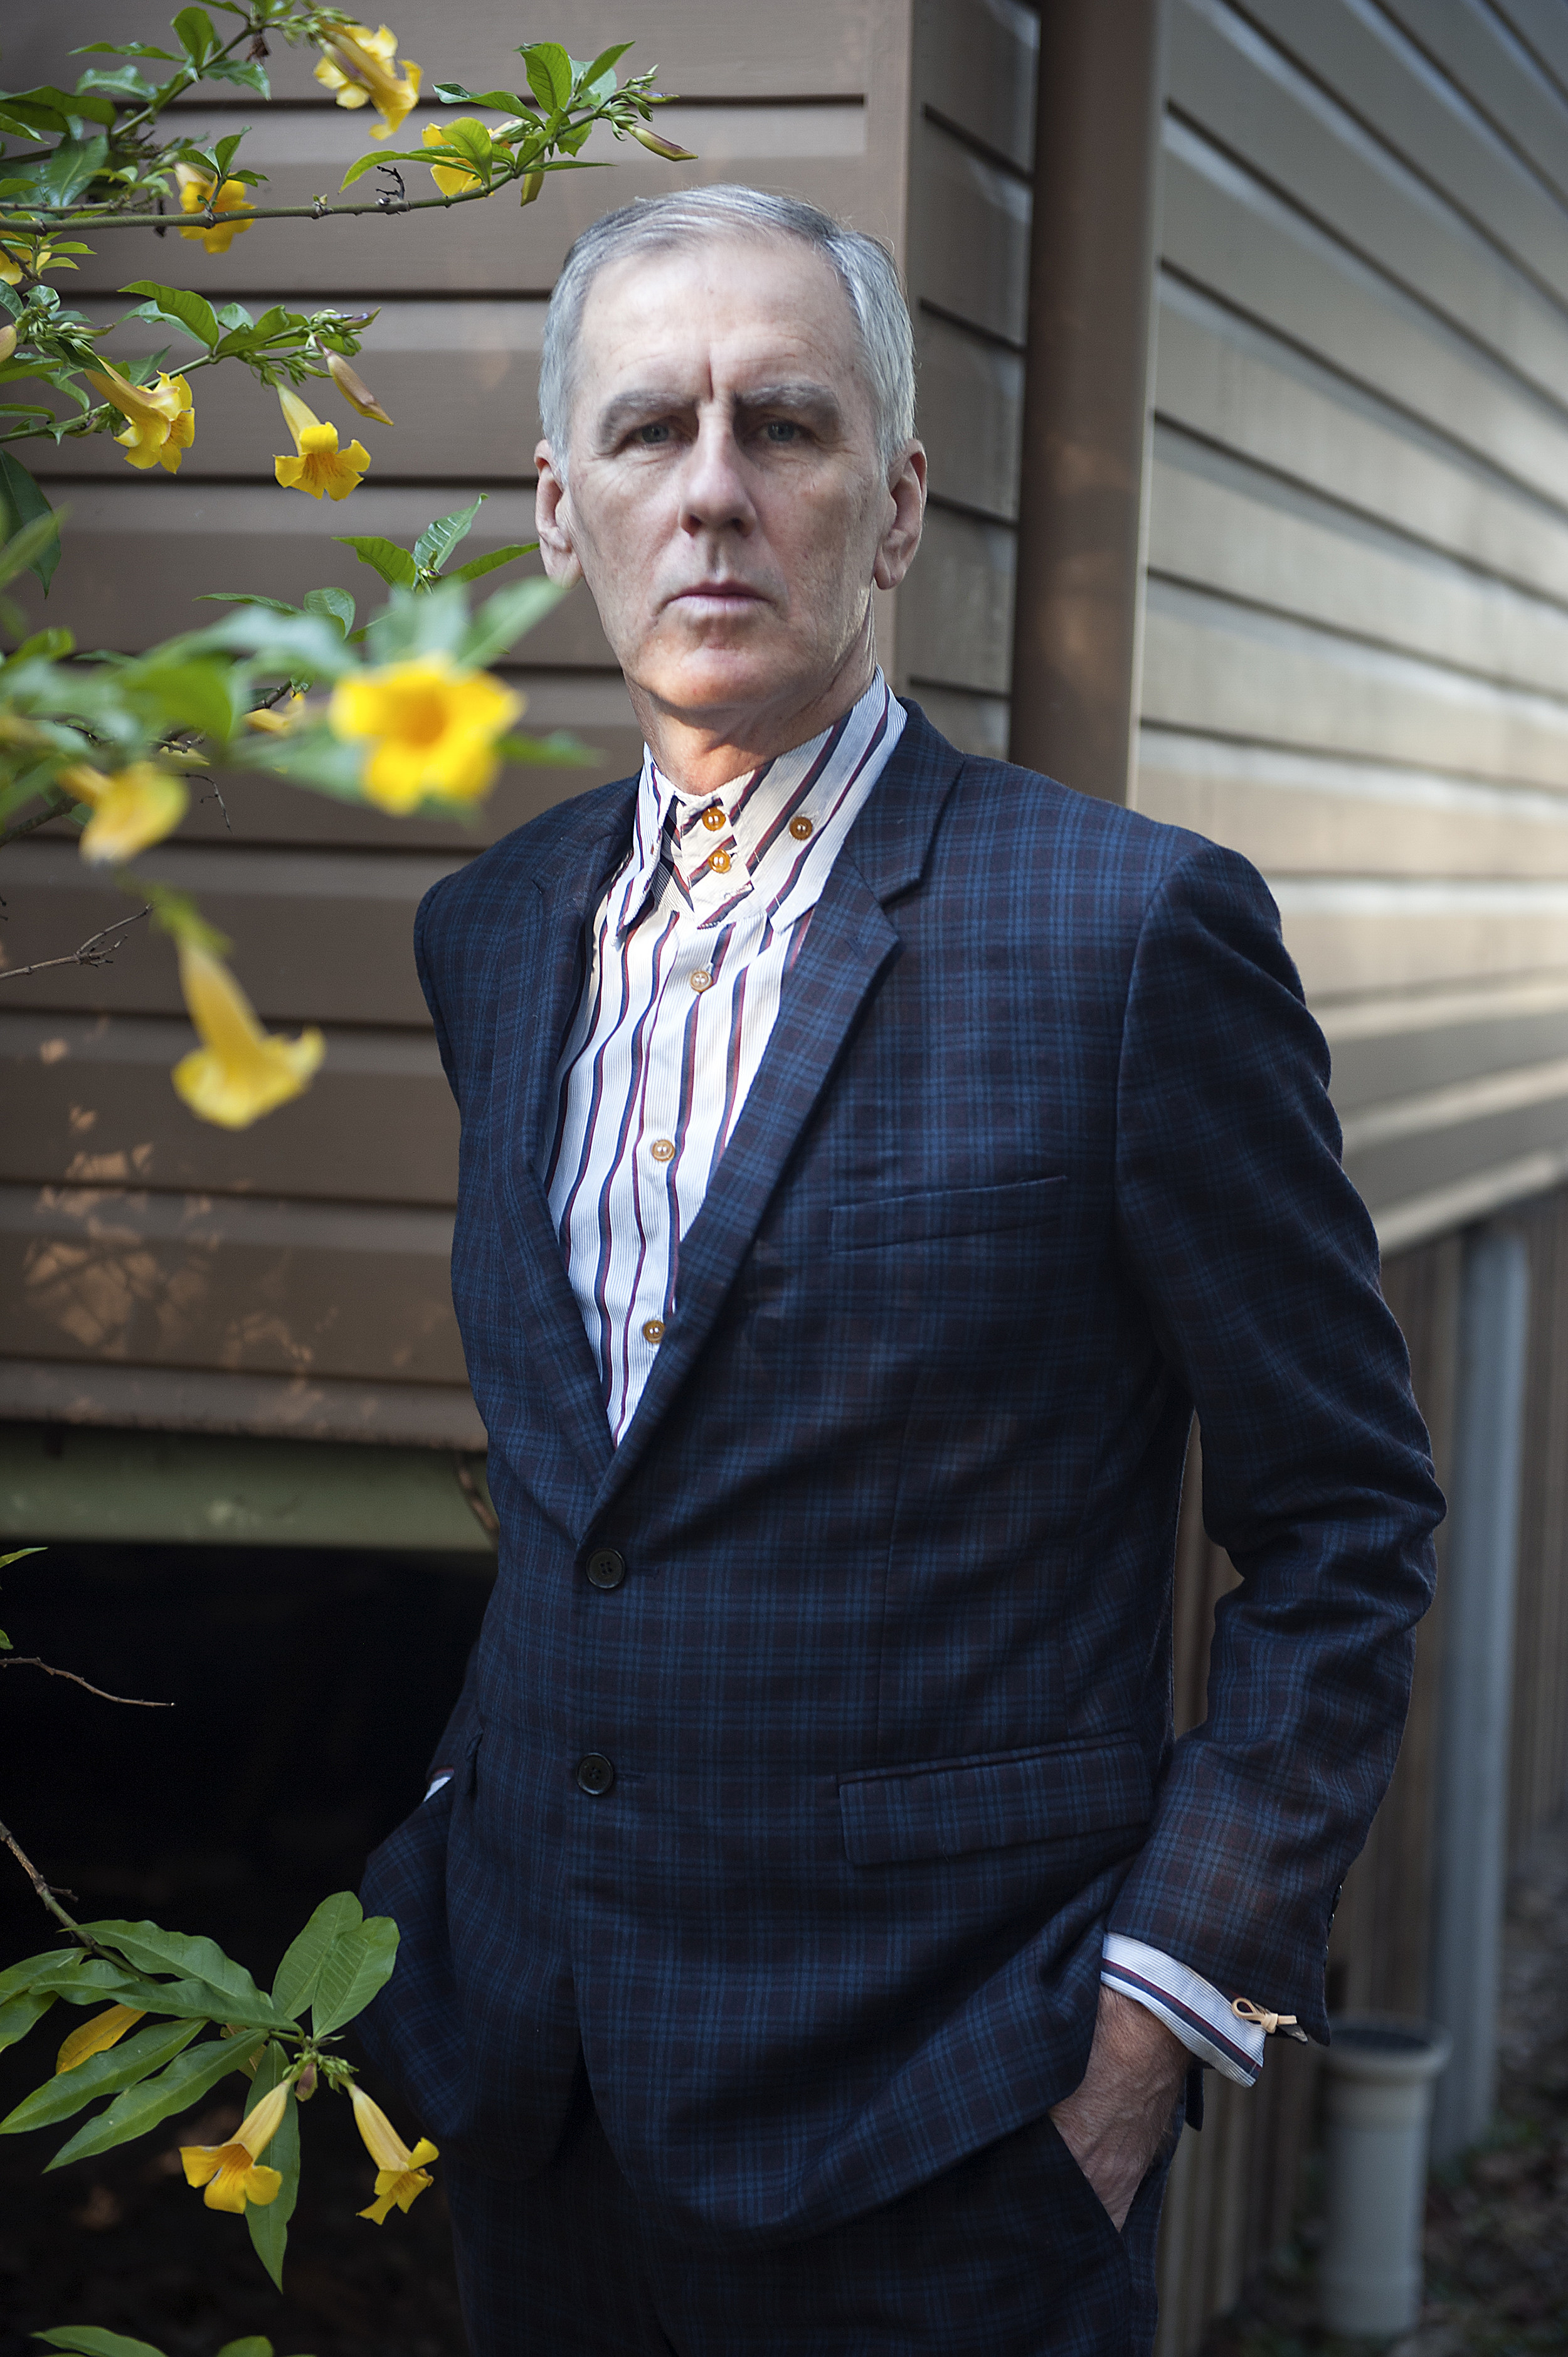 Robert Forster photographed in Caloundra, Queensland, on 26 September 2018 by Bleddyn Butcher